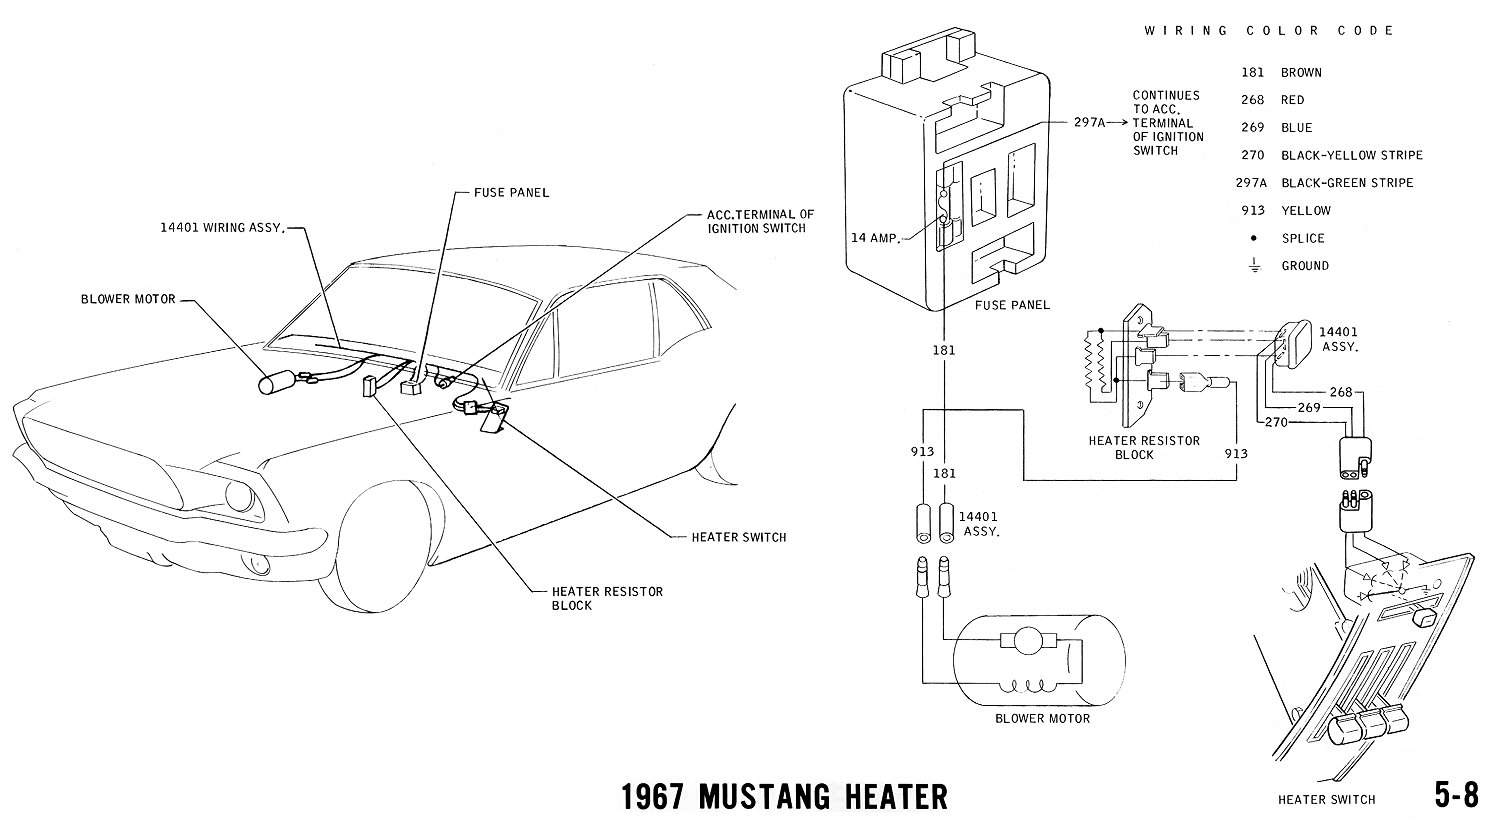 Fox Mustang Starter Wiring Diagram Library Ford Solenoid 1967 And Vacuum Diagrams Average Joe 67